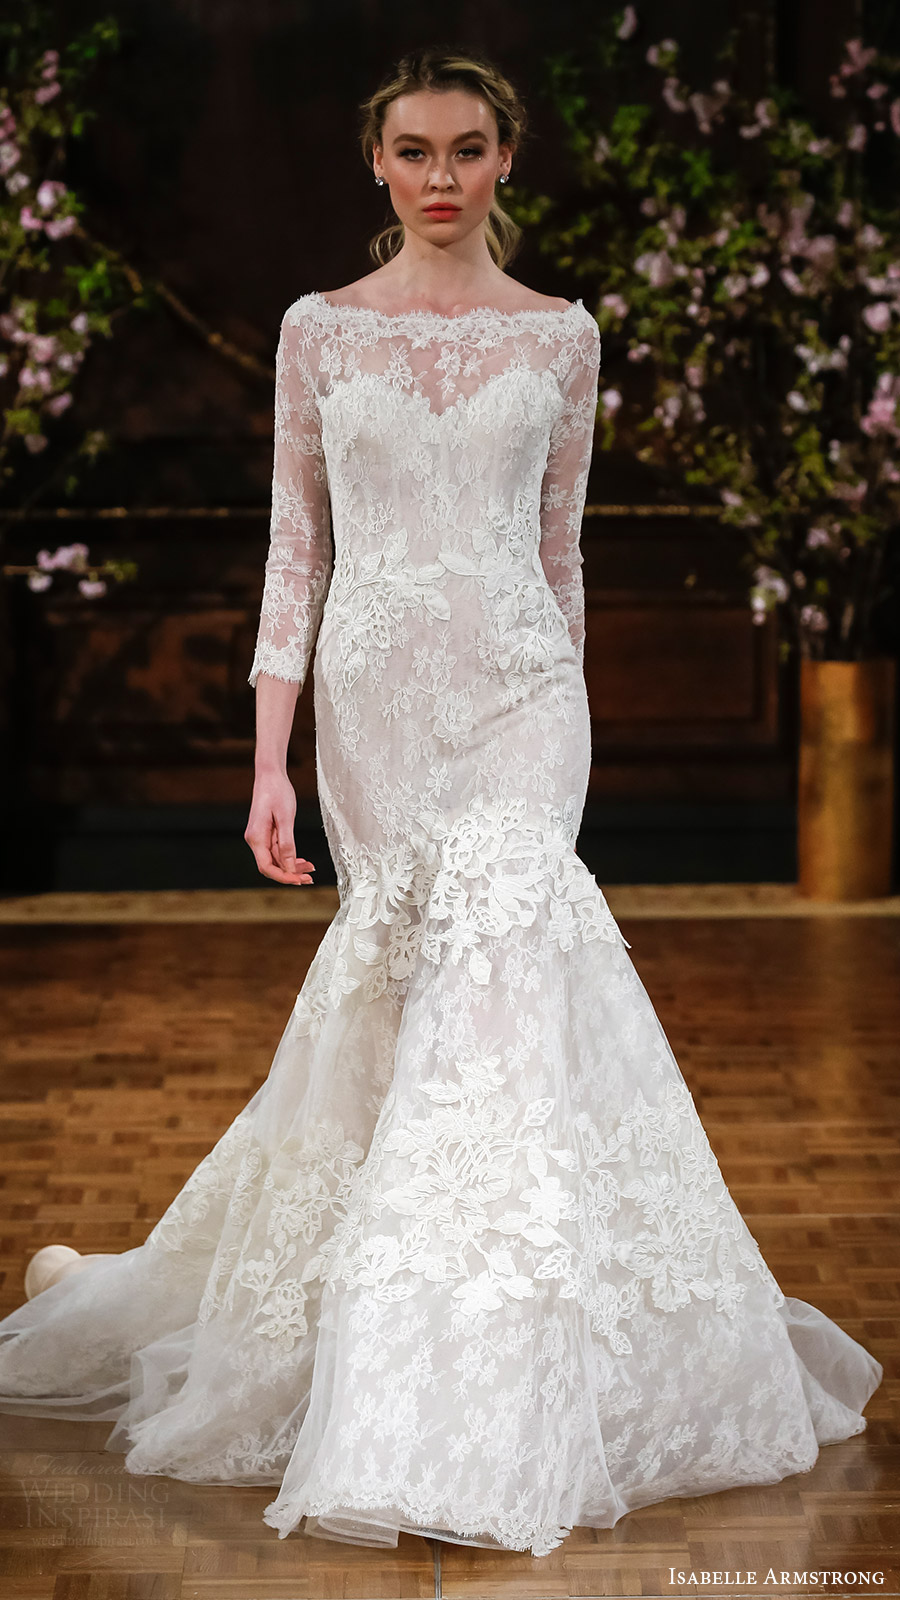 isabelle armstrong bridal spring 2017 illusion long sleeves bateau neck mermaid lace wedding dress (brooke) mv elegant romantic